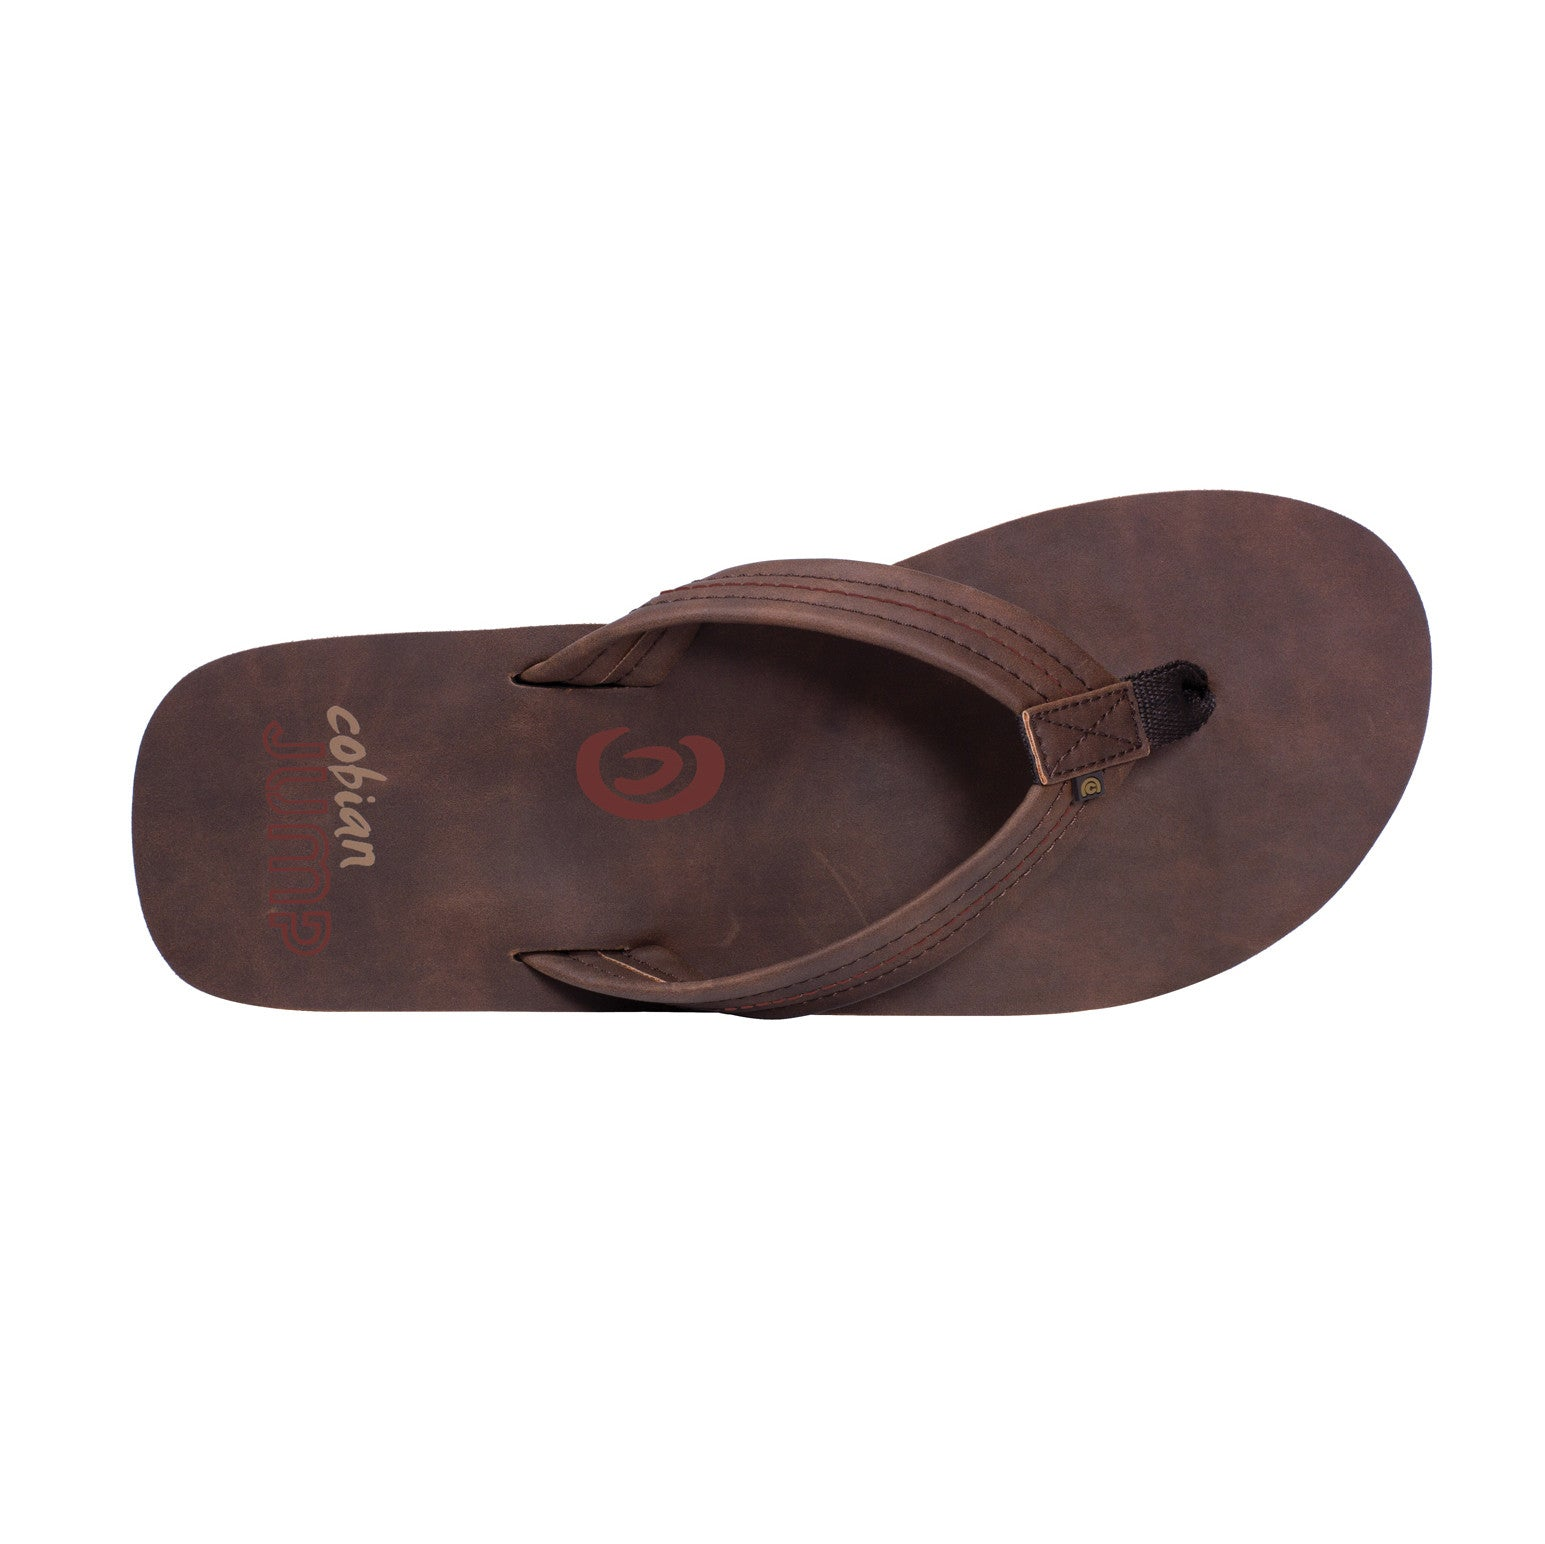 ac9b5b89eab9 Cobian Las Olas Mens Sandals (Brown) – Groundswell Supply